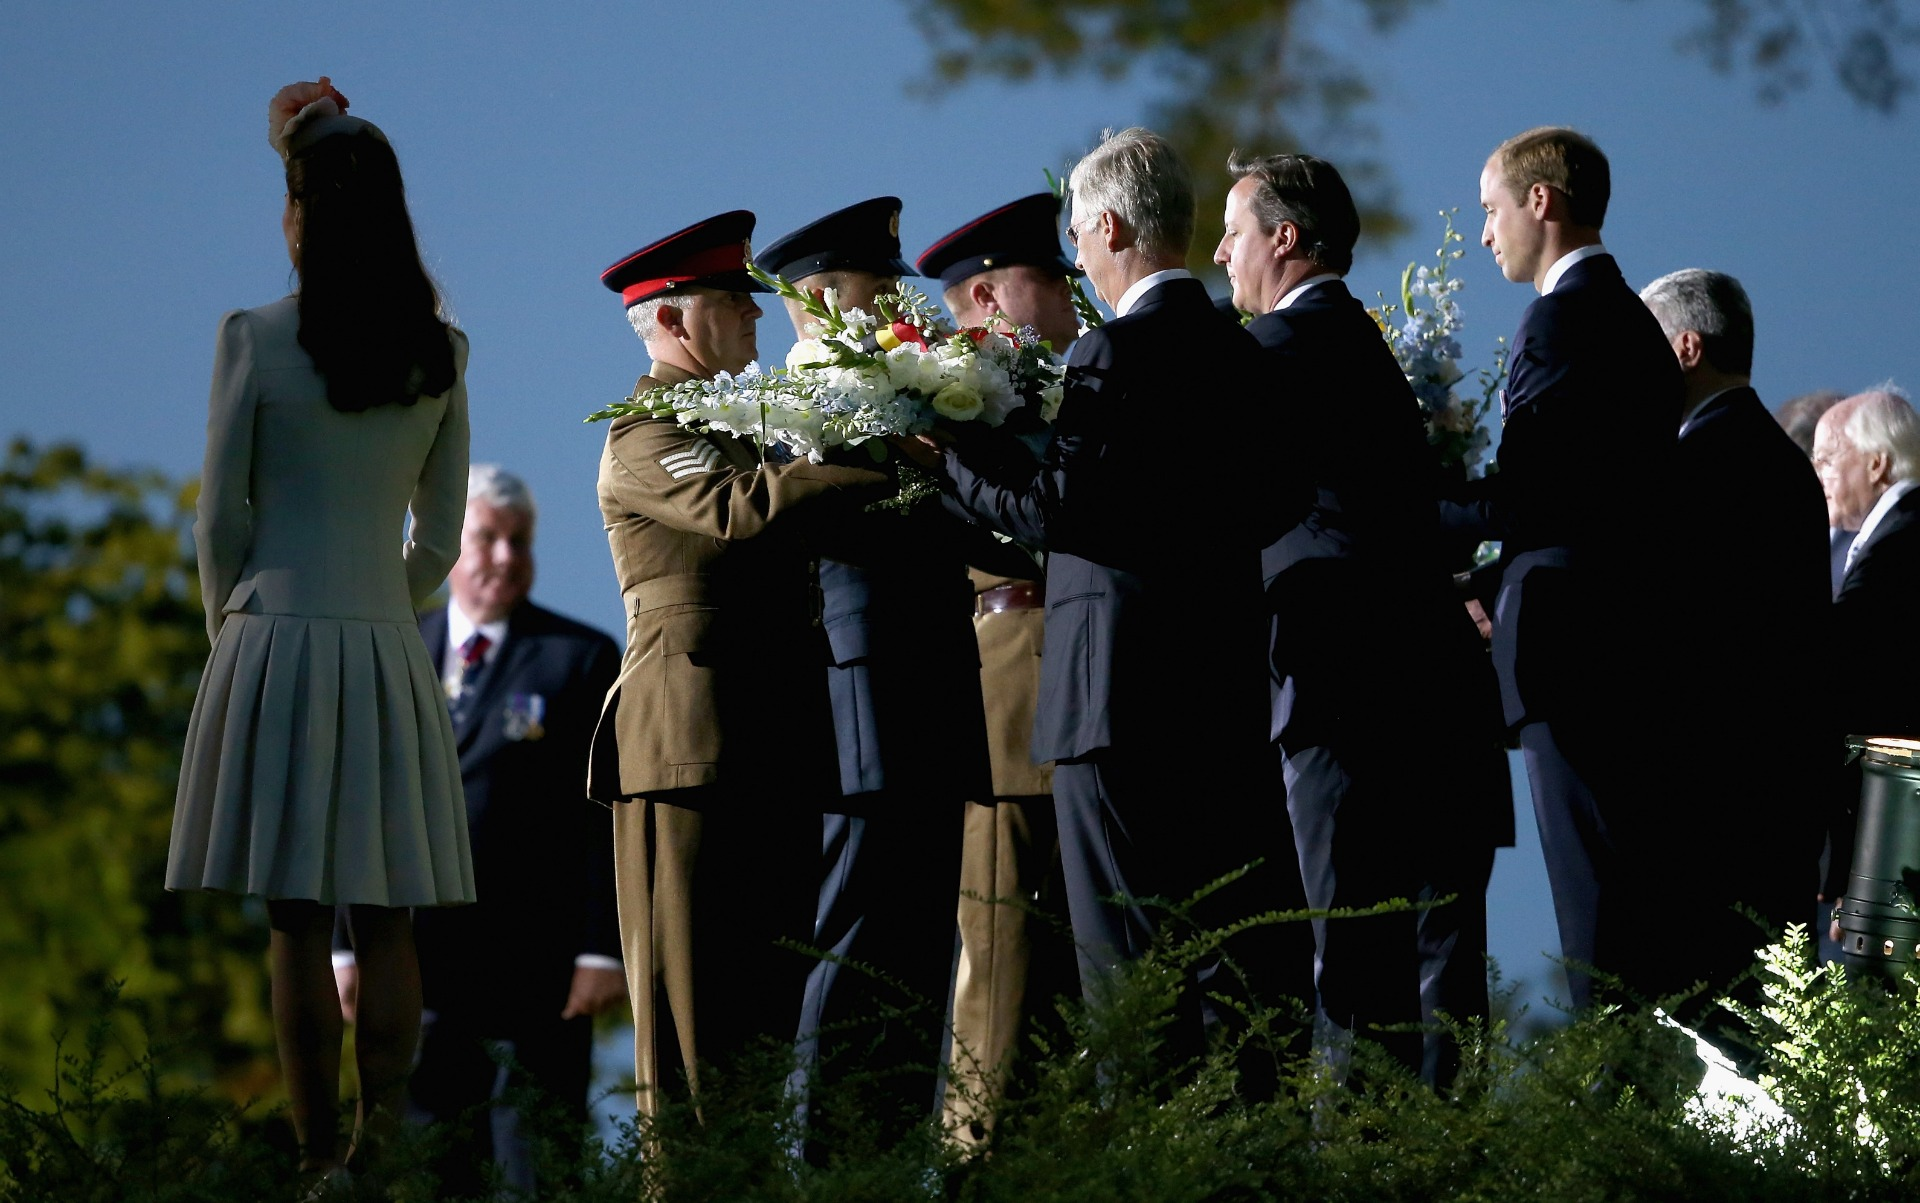 World leaders commemorate 100 years since the start of WWI